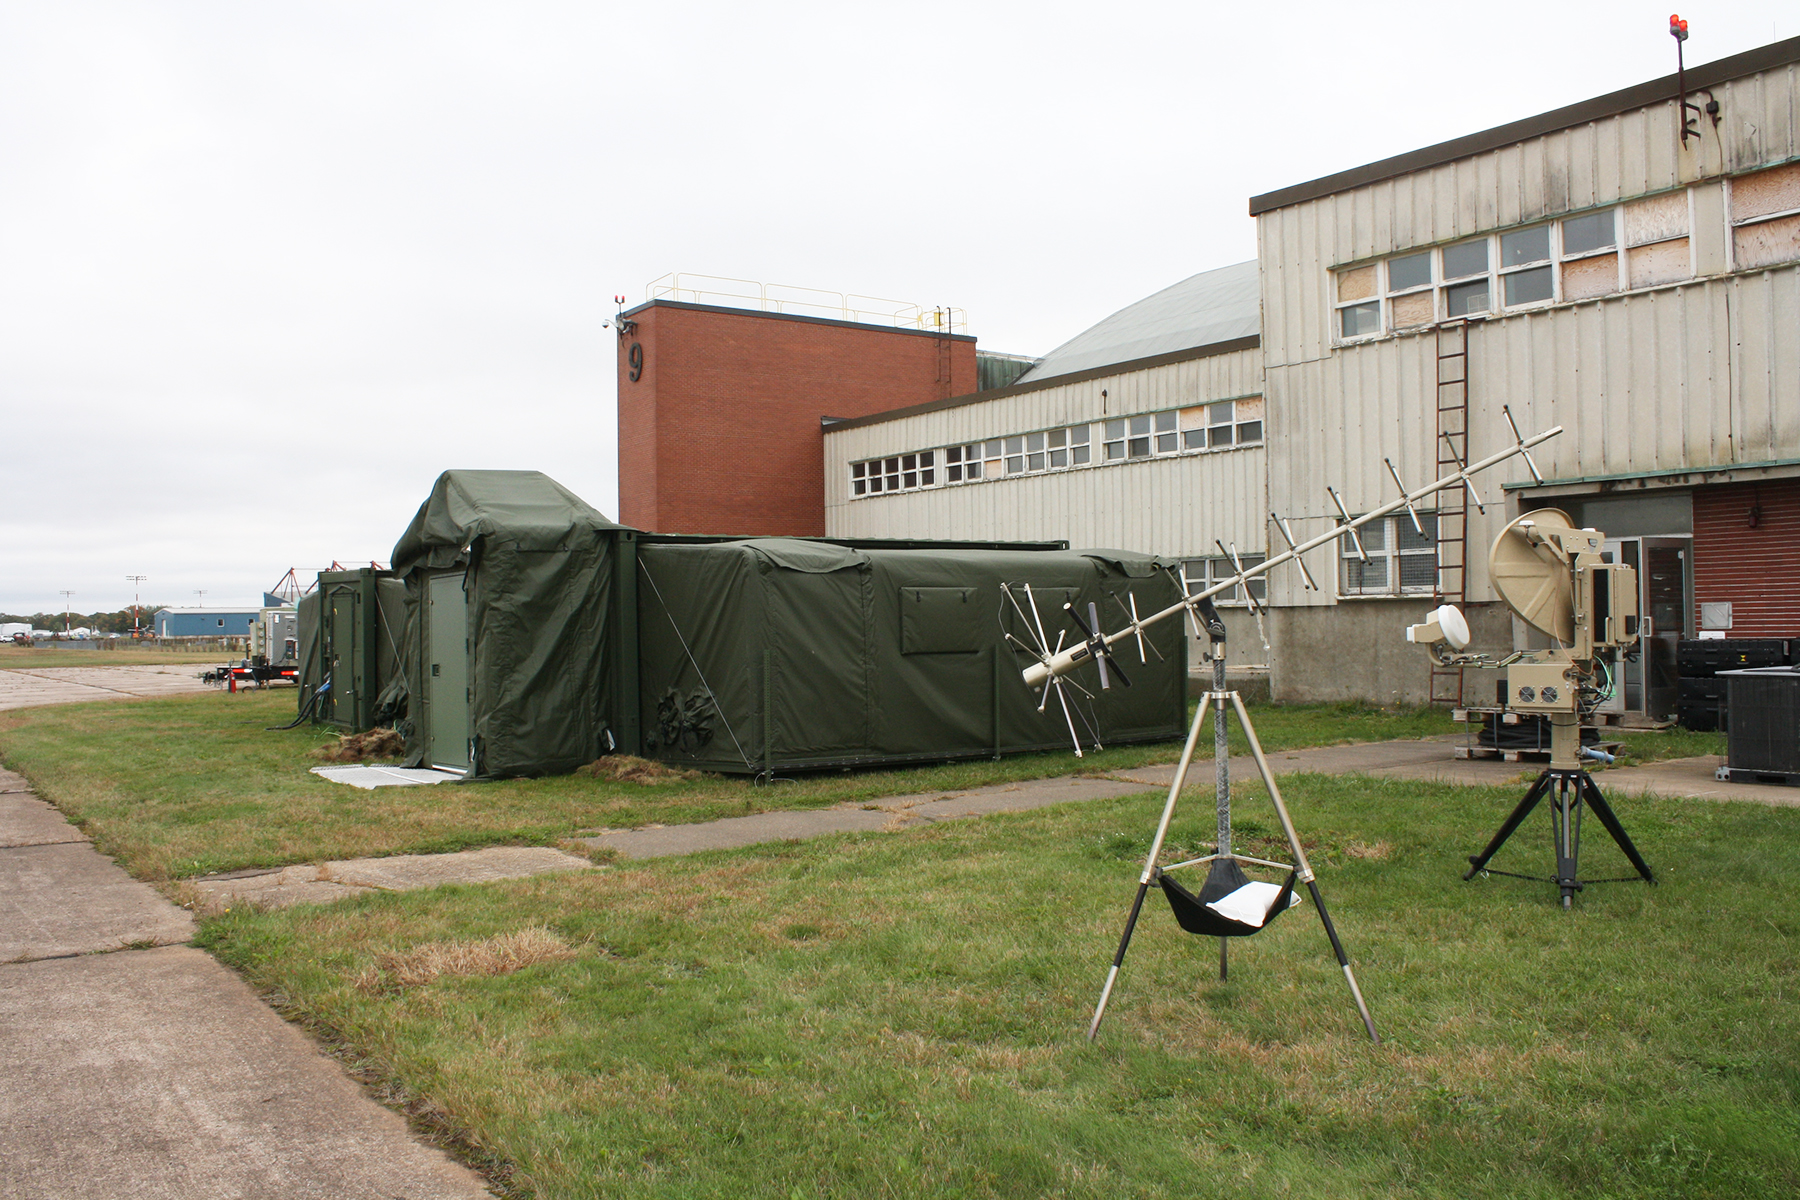 A large olive-green tent sits on the grass alongside a building.